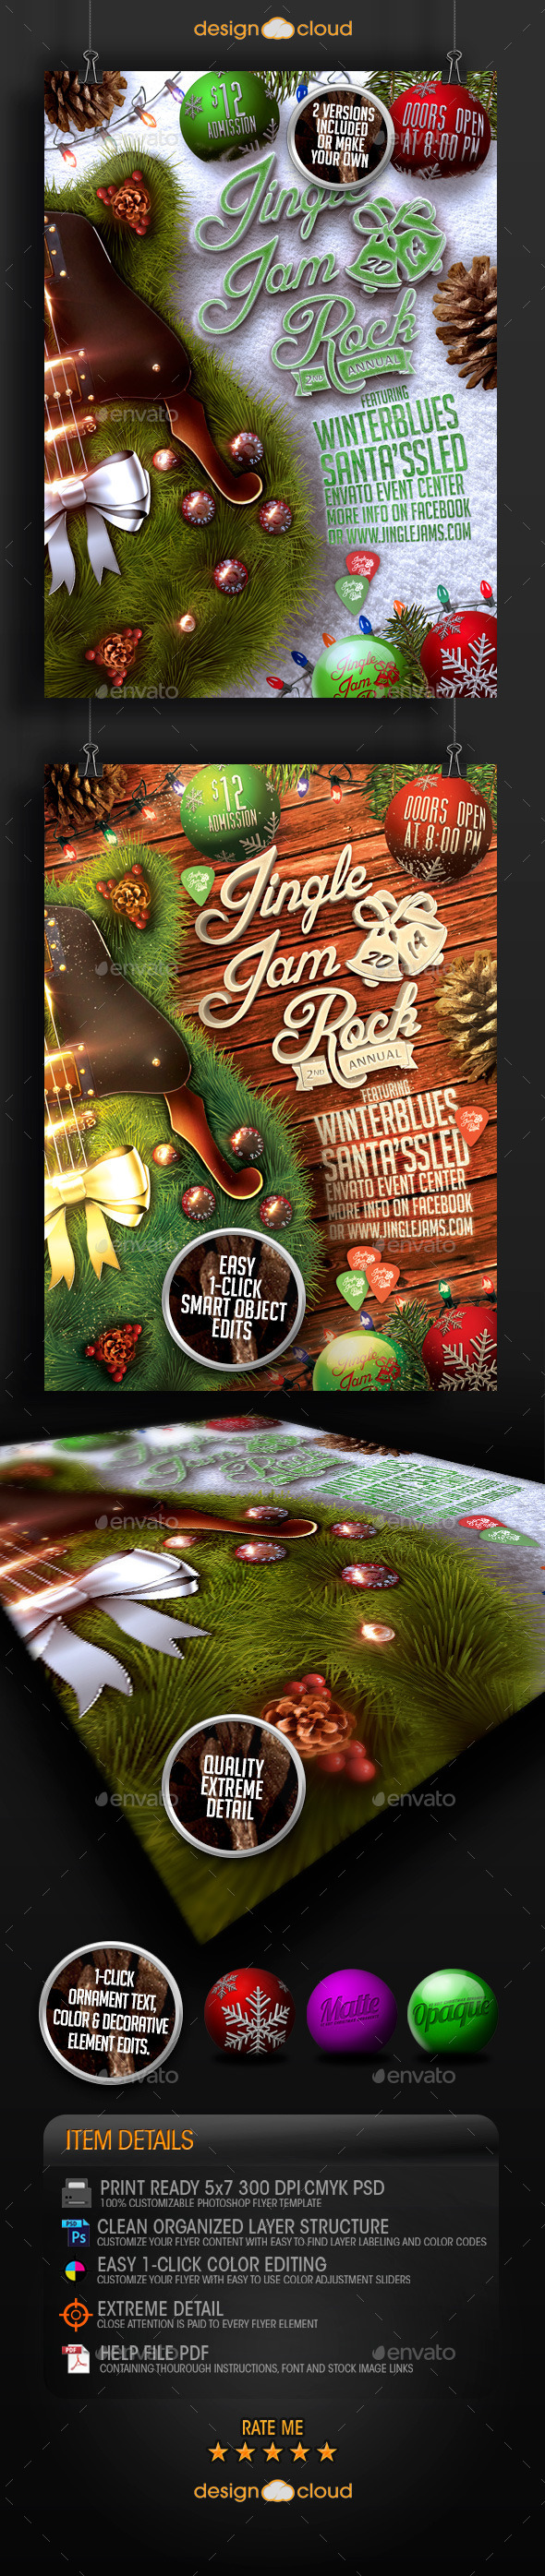 Jingle Jam Rock Christmas Flyer Template - Holidays Events